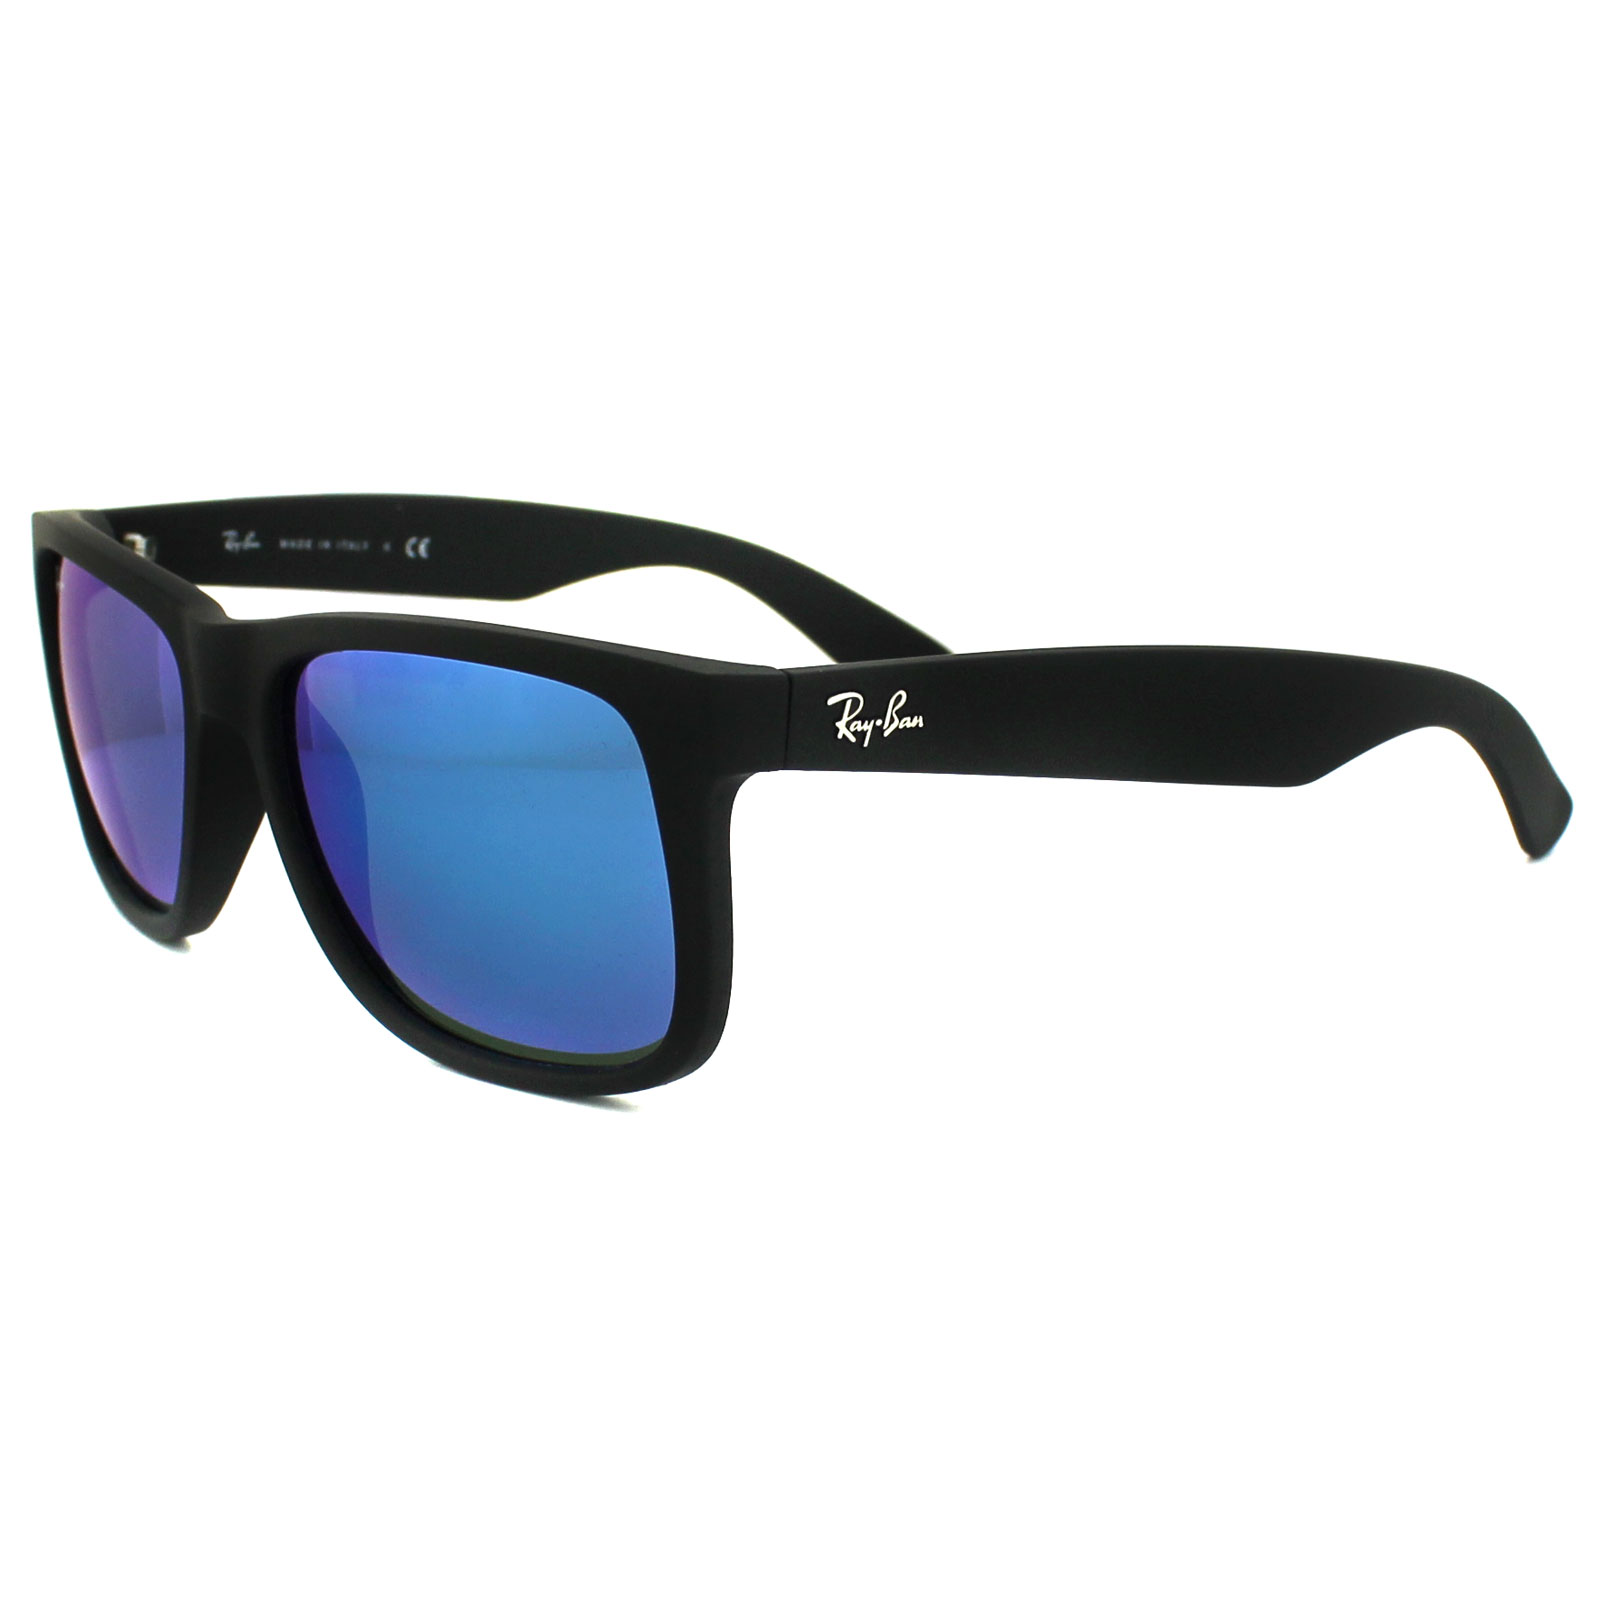 Ray Ban Sunglasses Justin 4165 622 55 Rubber Black Blue